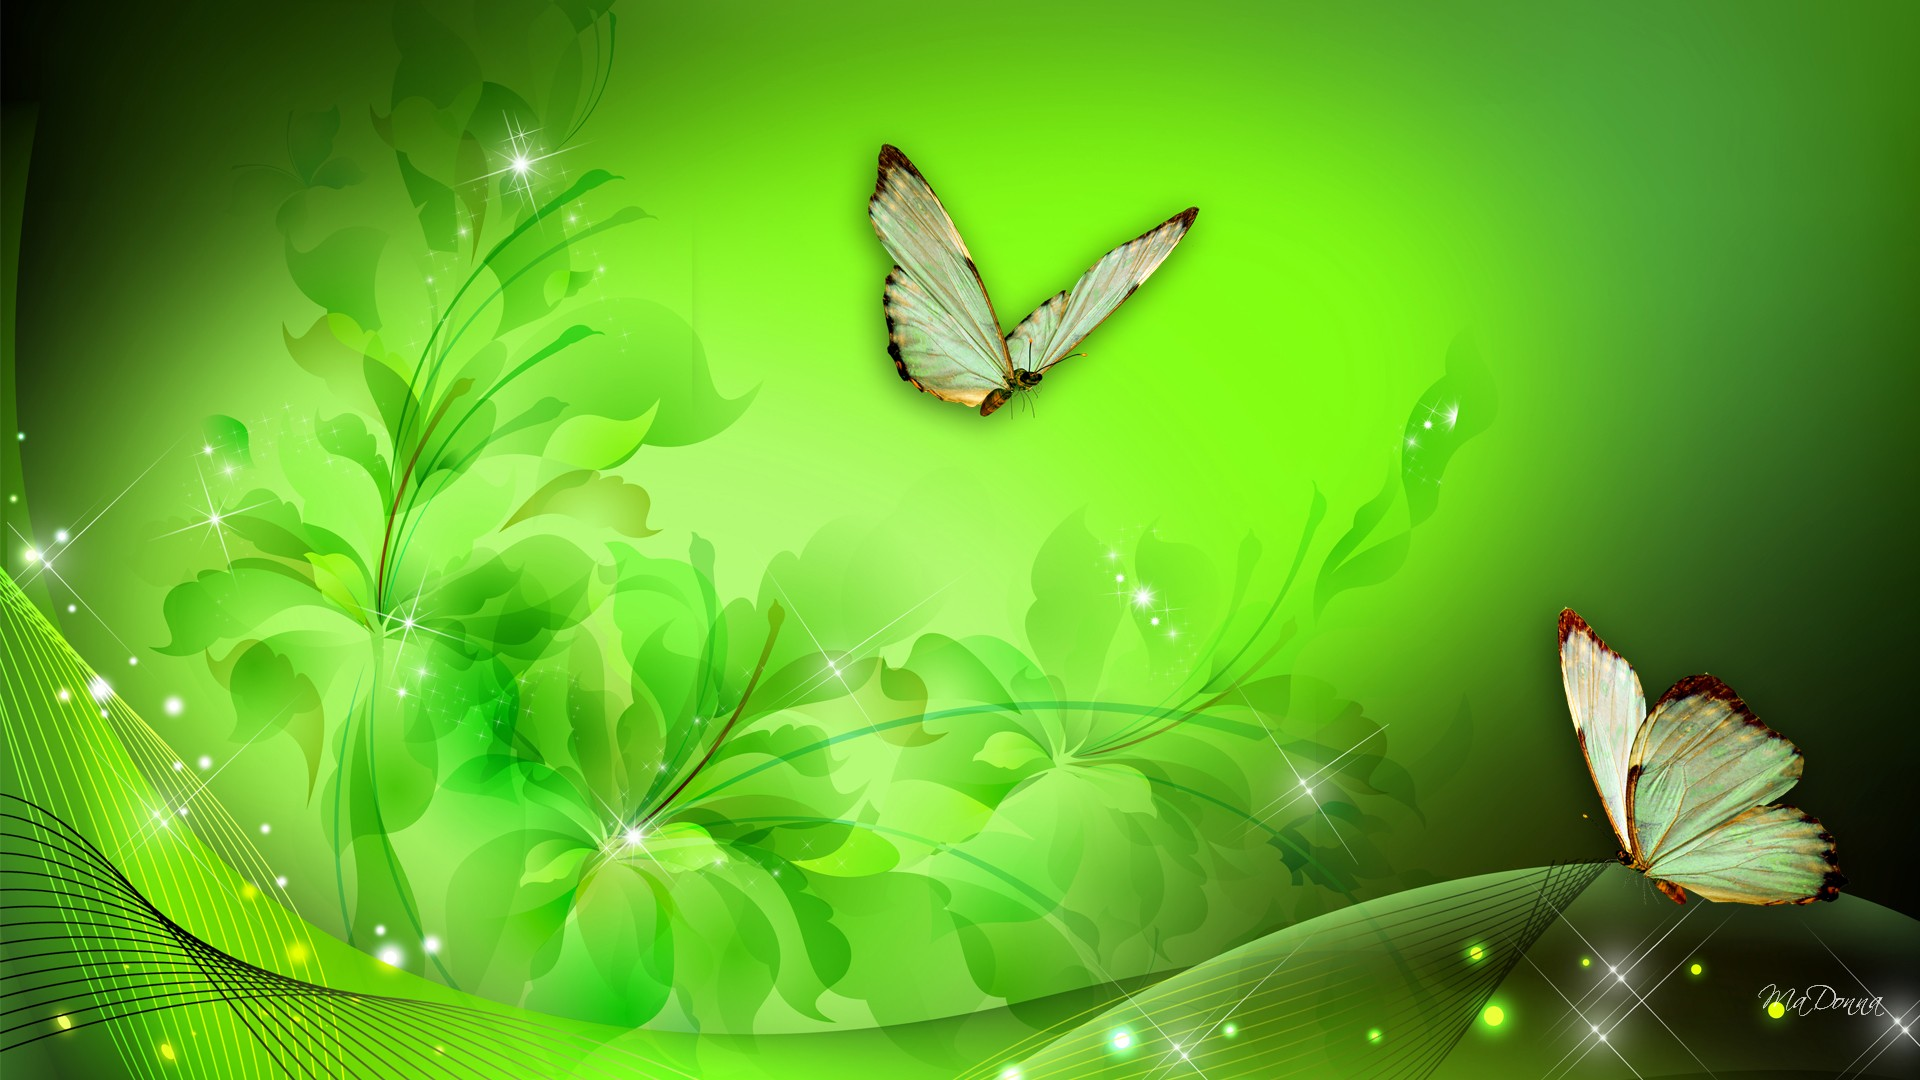 Green Flowers Wallpapers HD Pictures Live HD Wallpaper HQ Pictures 1920x1080